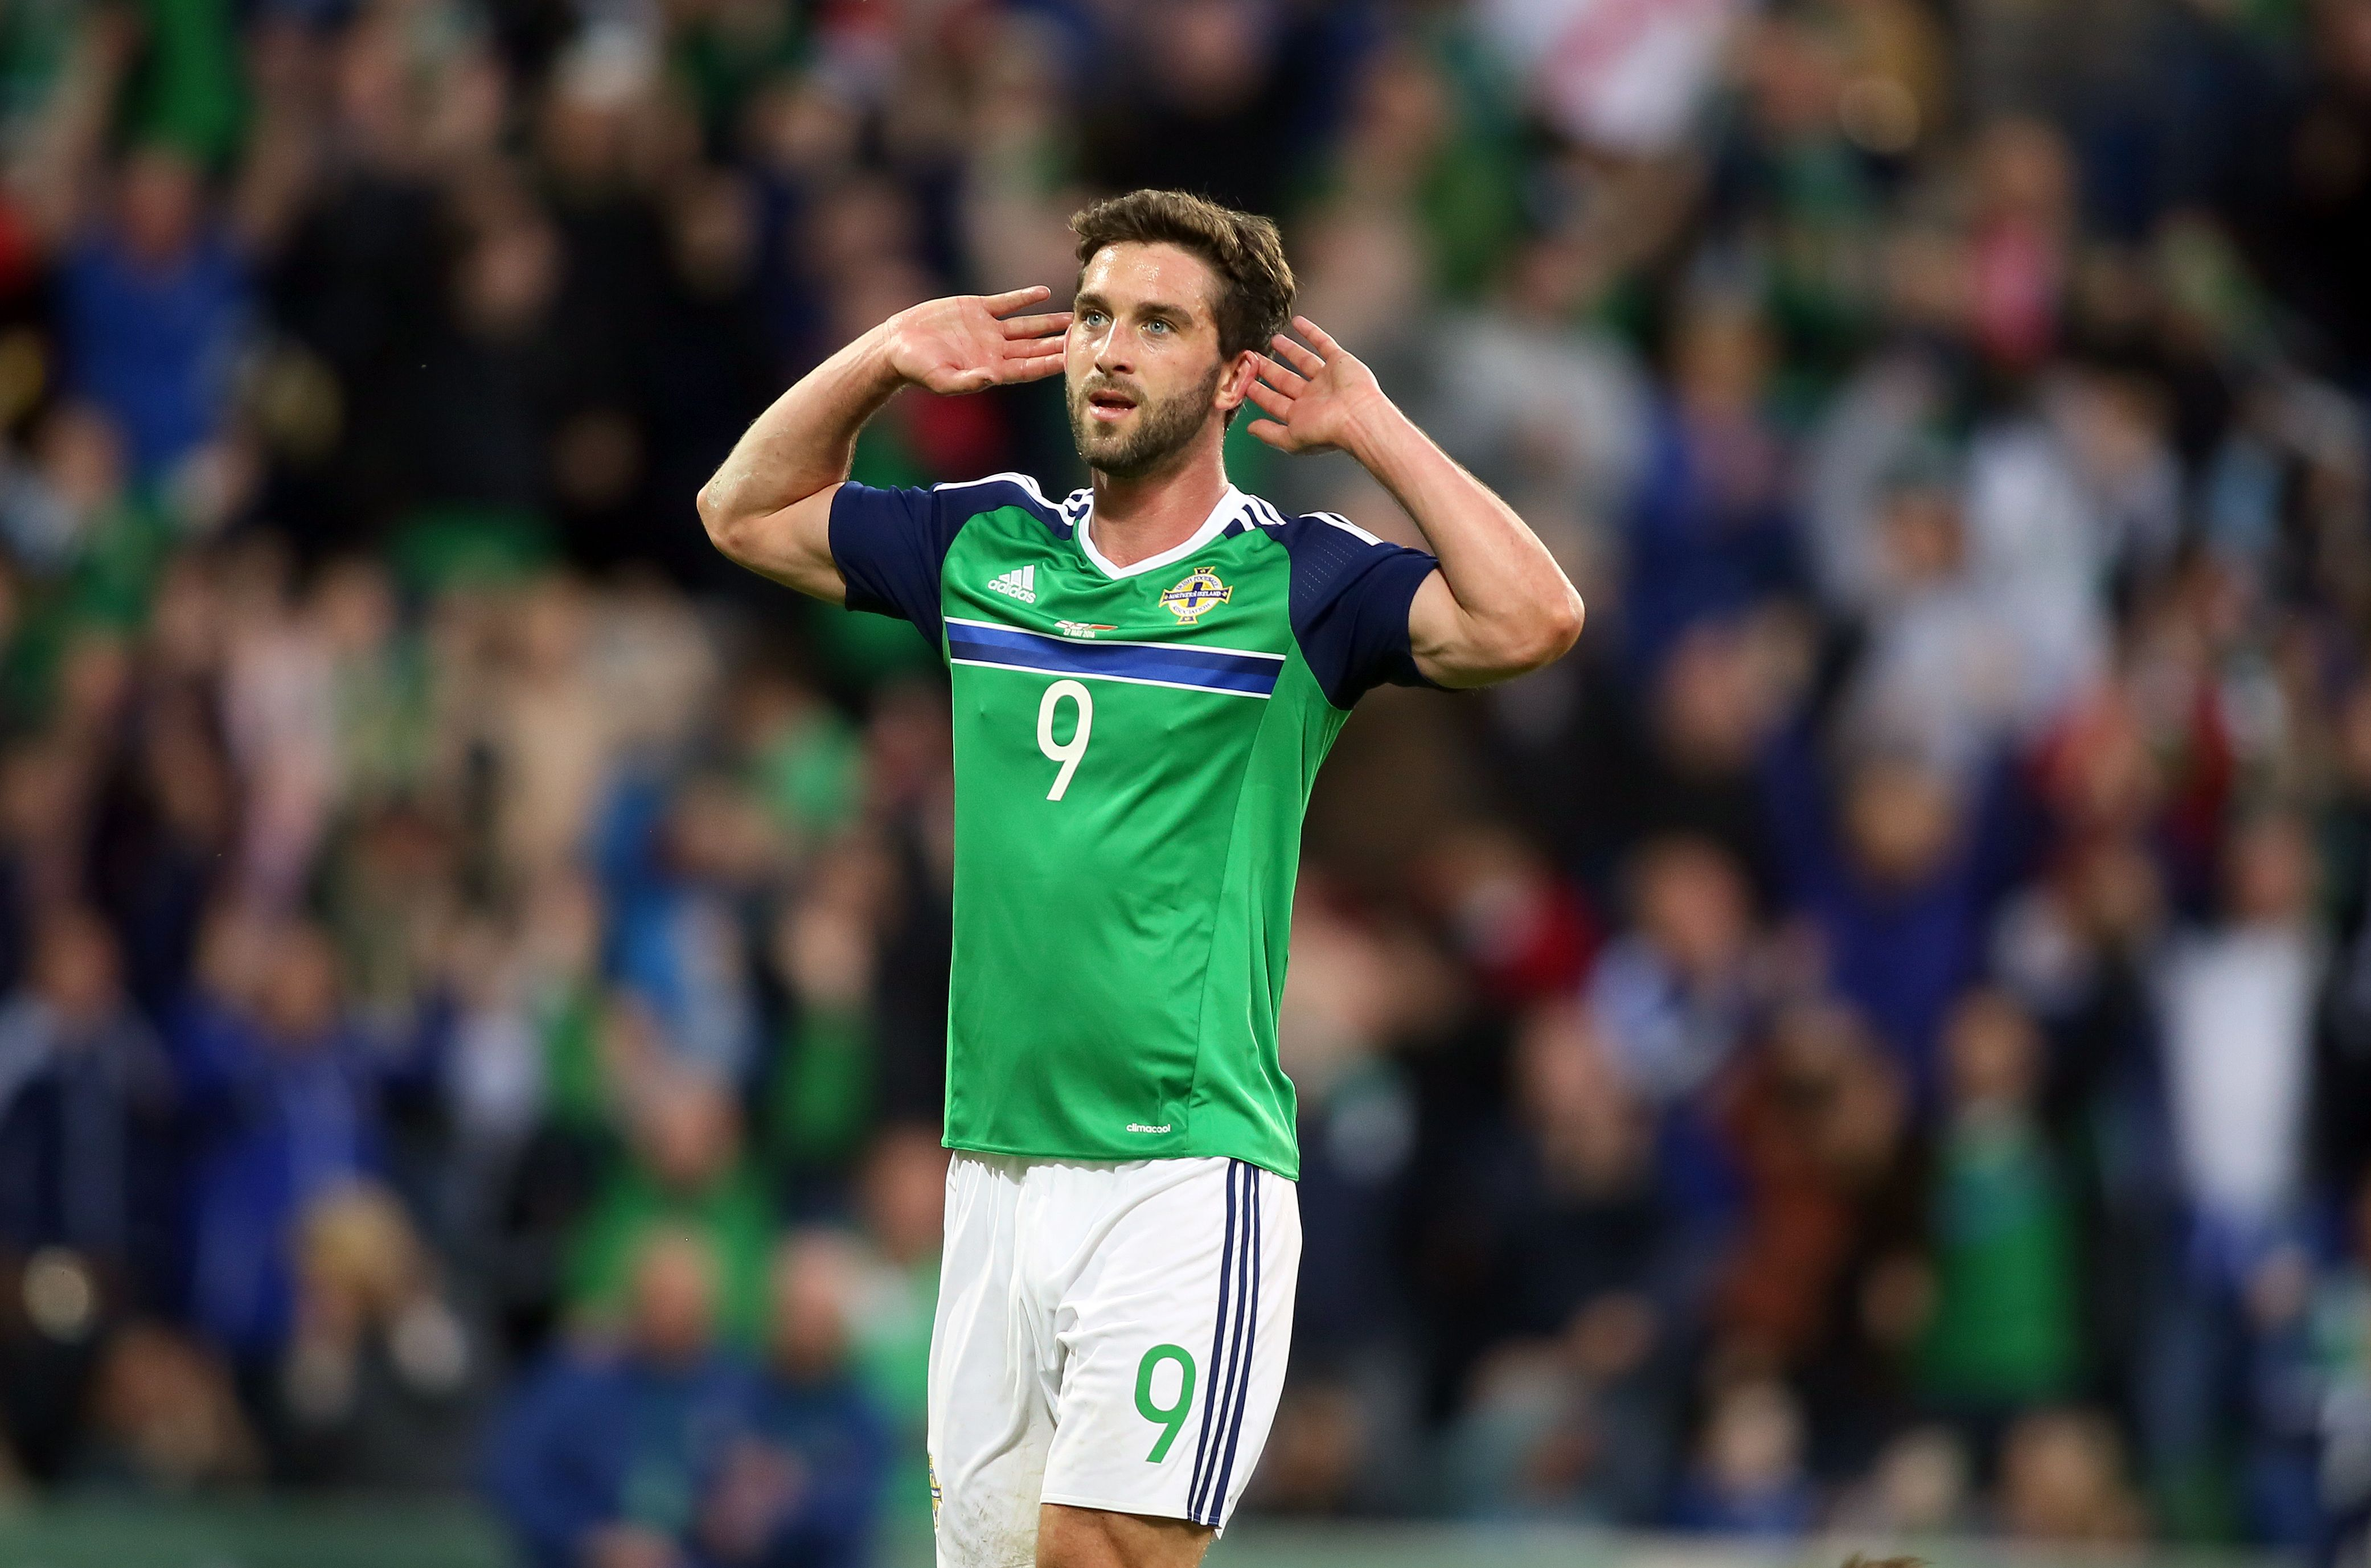 «Will Grigg's on fire, your defence is terrified»